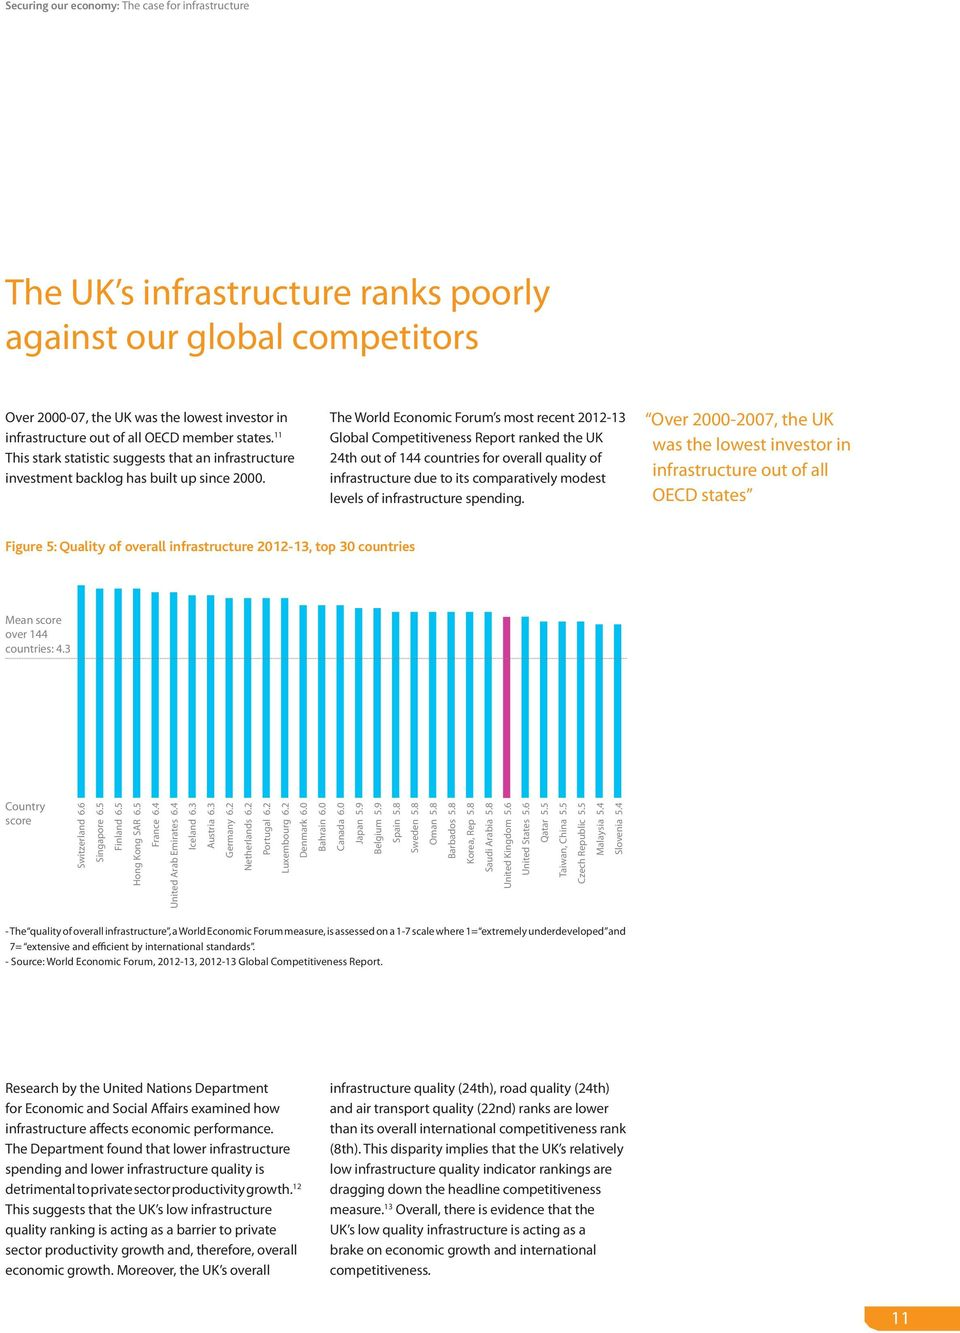 The World Economic Forum s most recent 2012-13 Global Competitiveness Report ranked the UK 24th out of 144 countries for overall quality of infrastructure due to its comparatively modest levels of